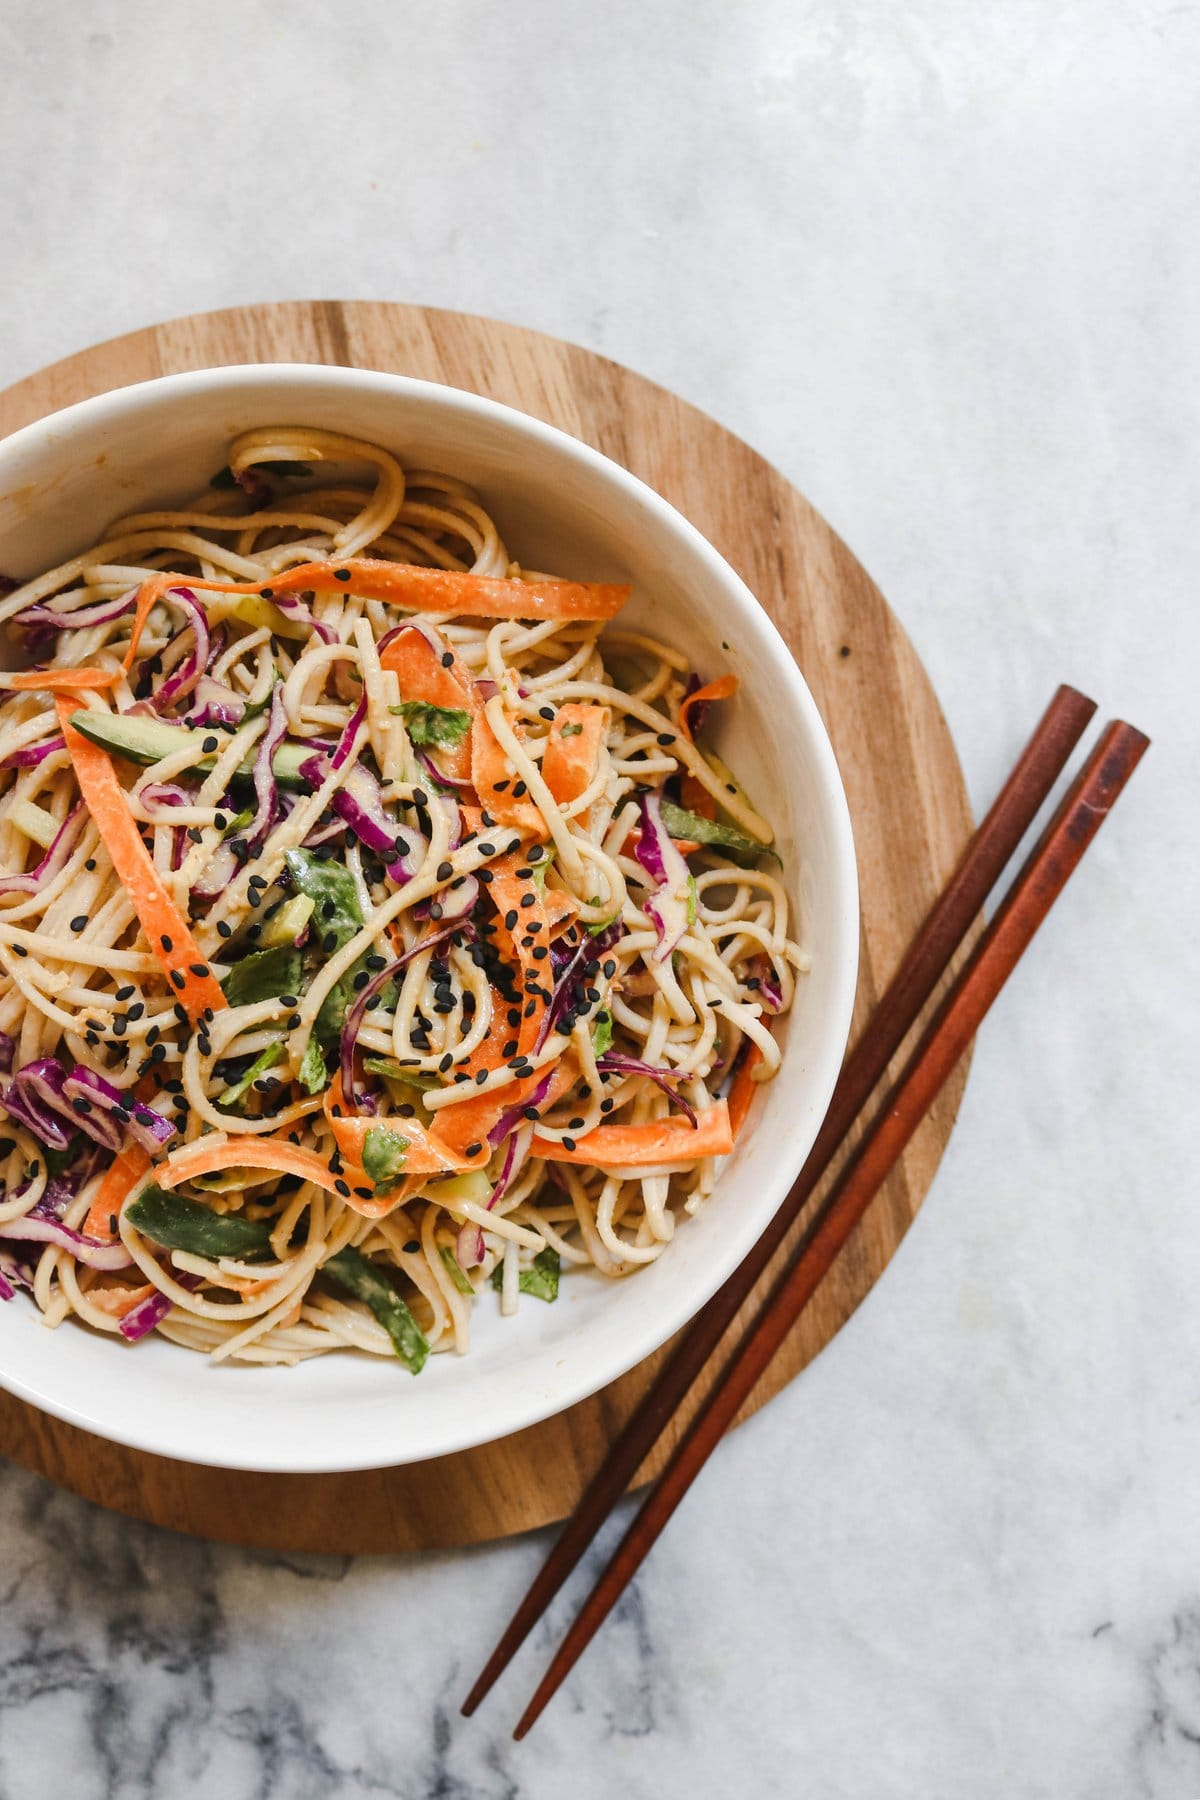 Cold Soba Noodle Salad With Peanut Sauce Vegan From My Bowl